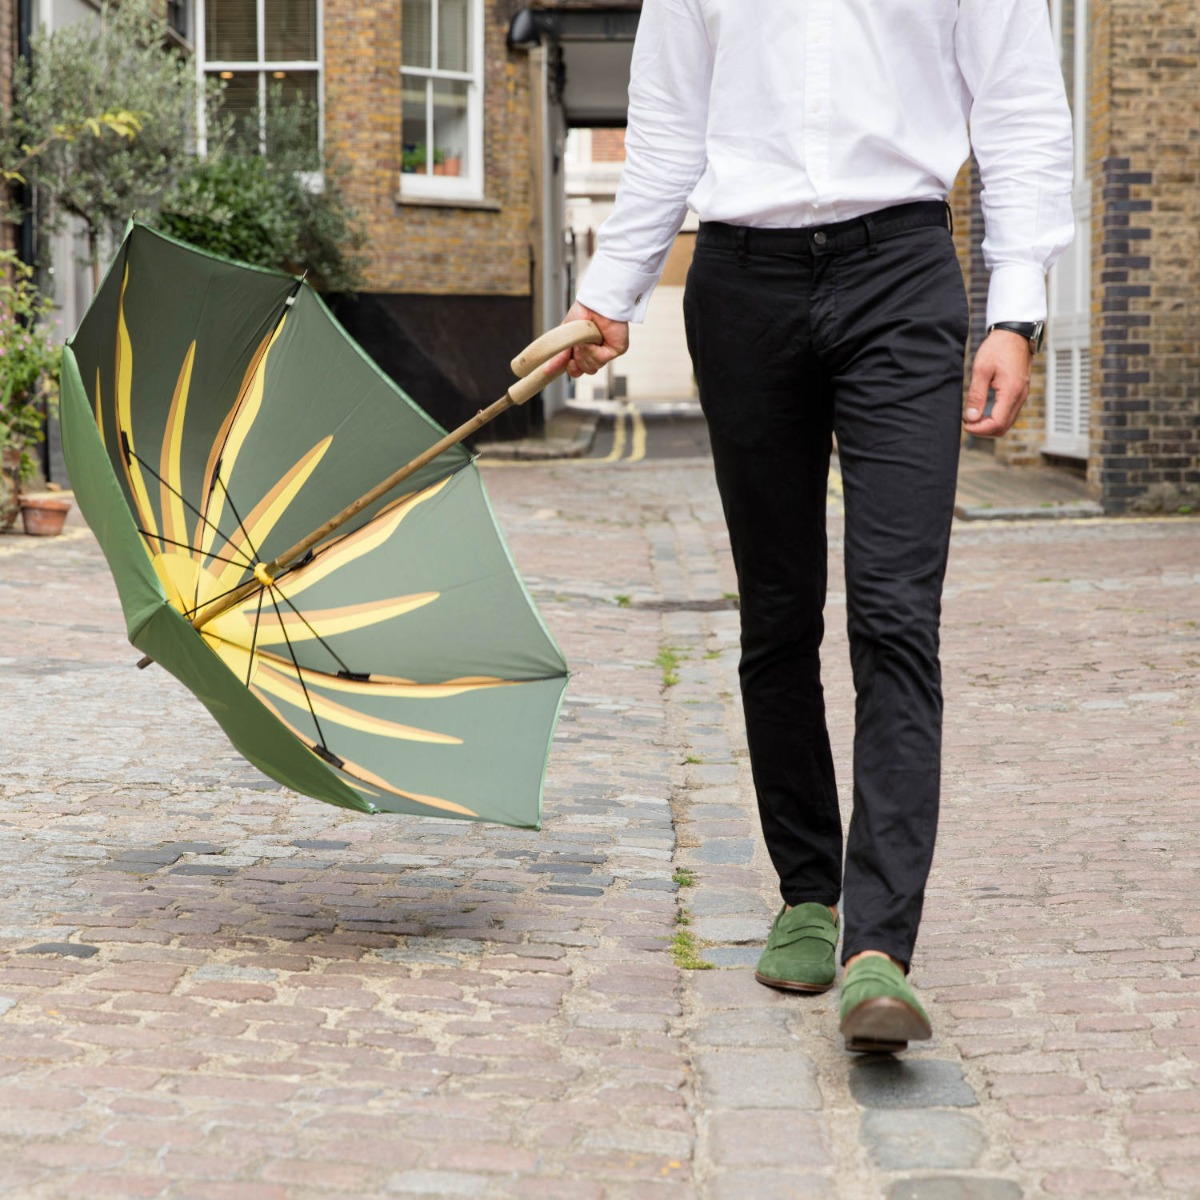 A man on a cobbled street wearing green loafers. He is holding a green umbrella with a sunburst print inside the umbrella.